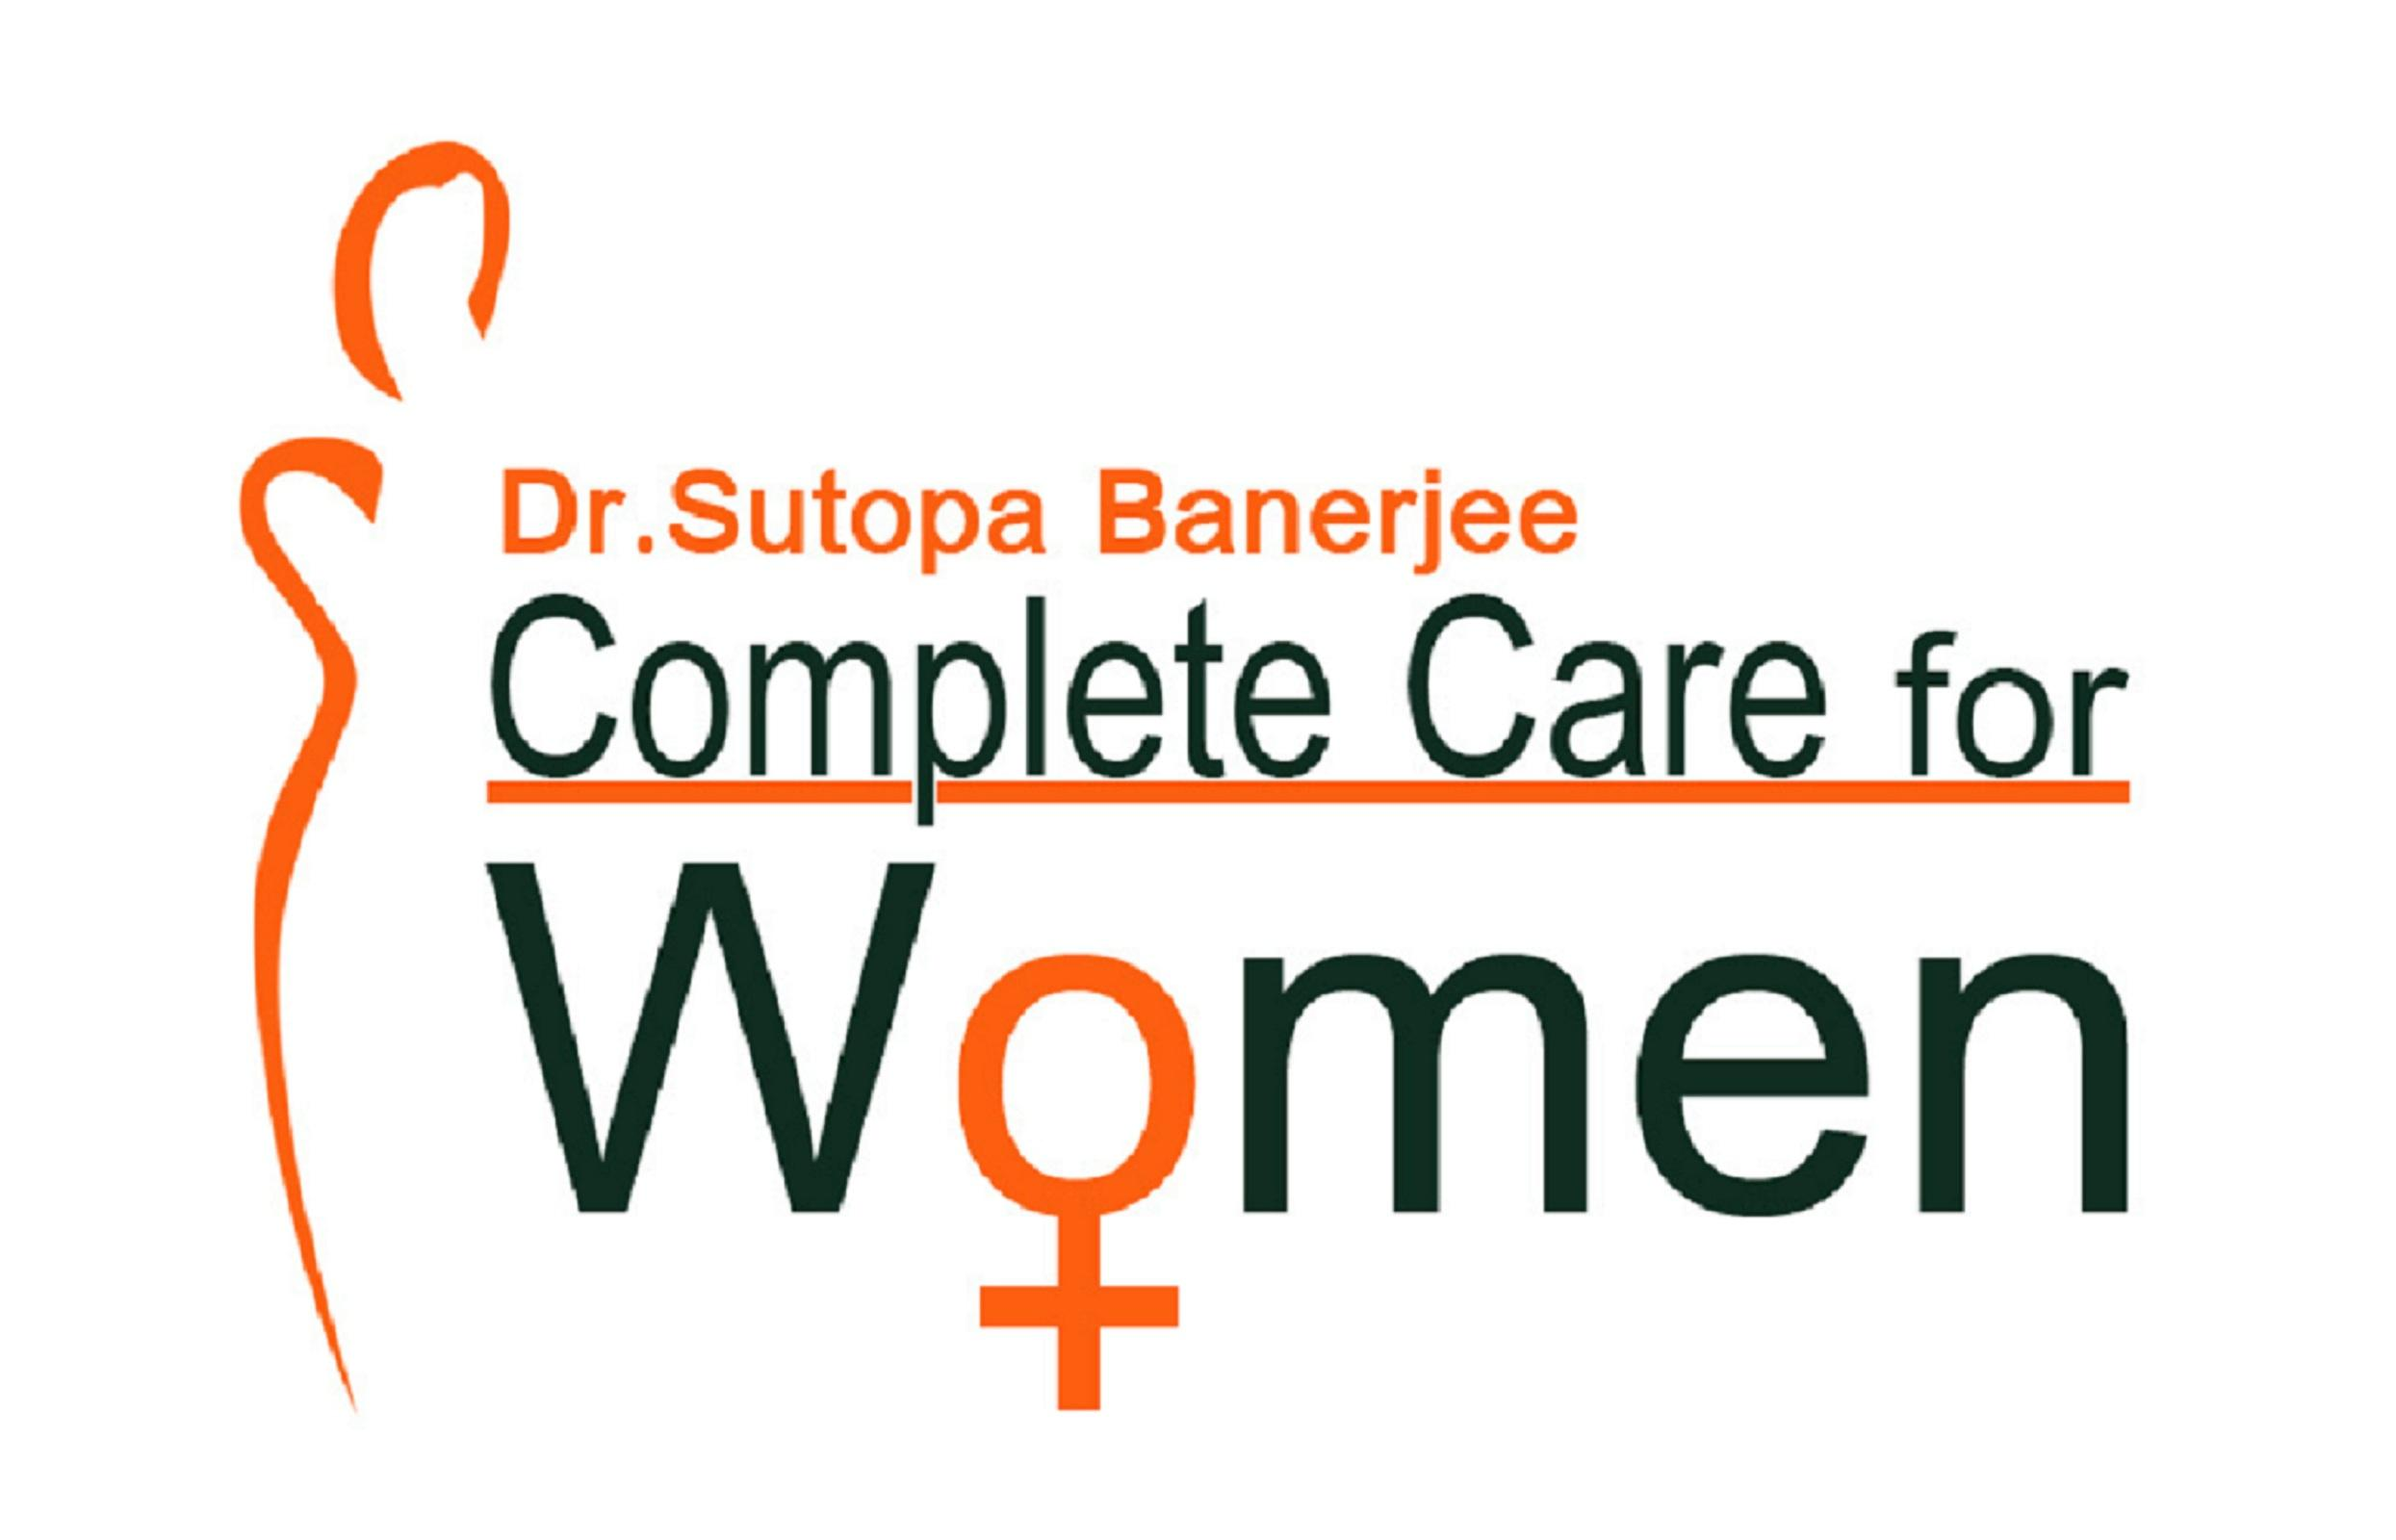 Dr. Sutopa Banerjee's Complete Care for Women